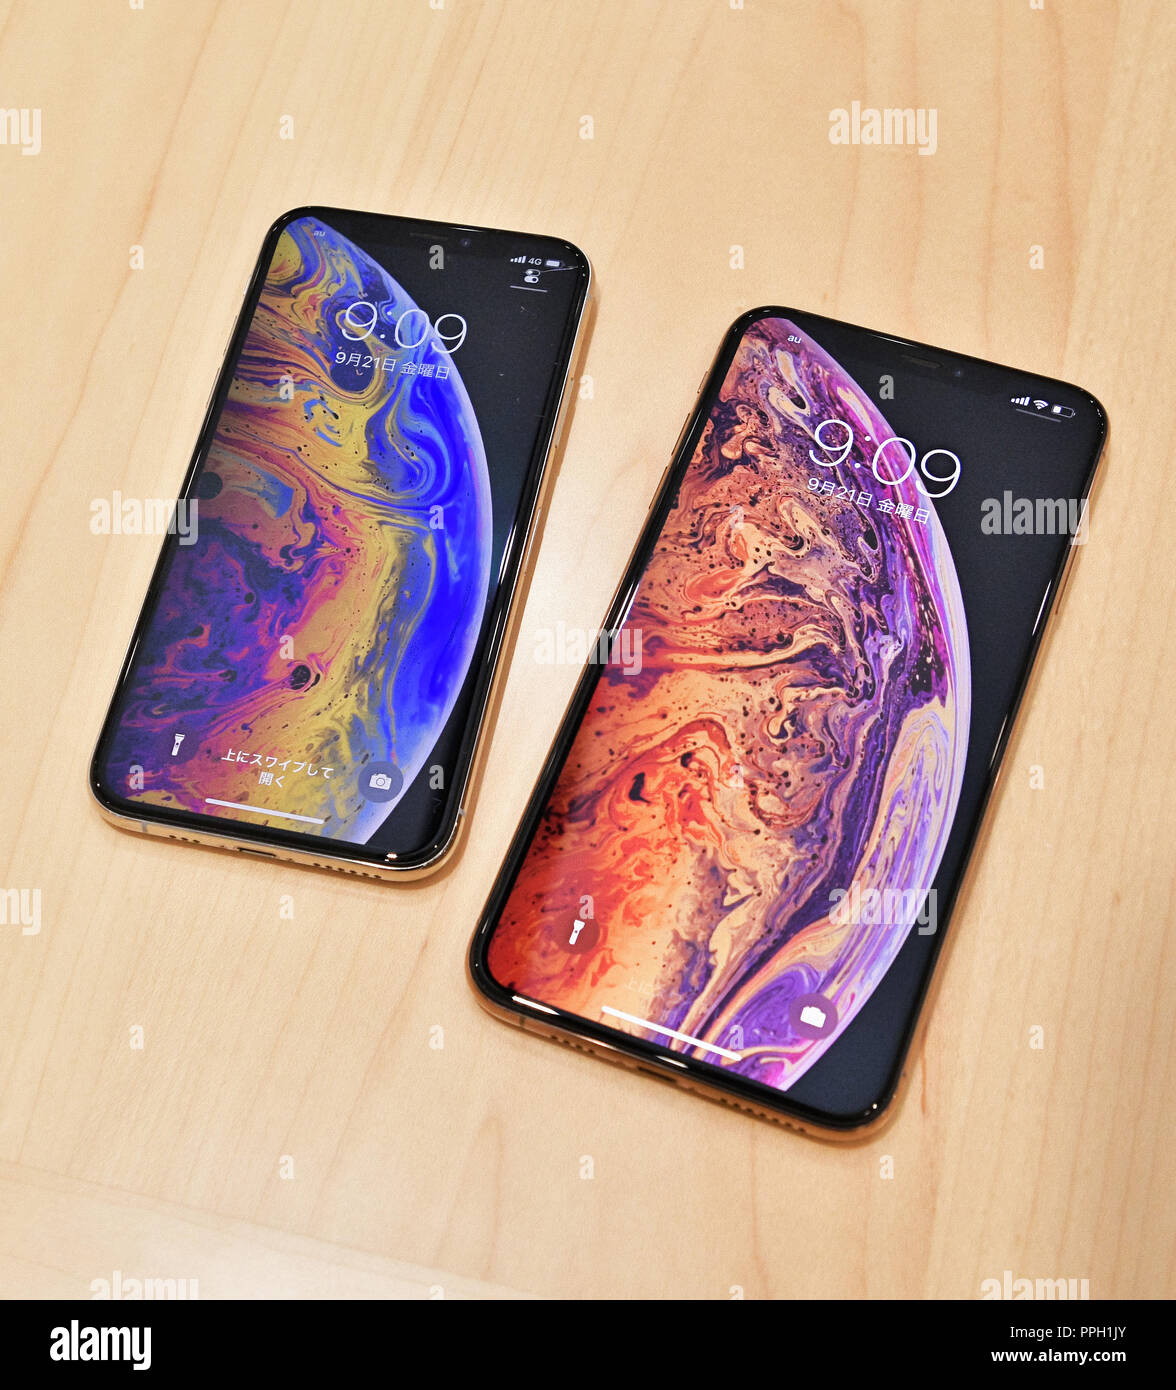 iPhone Xs, Apple, KDDI, au, September 21, 2018, Tokyo, Japan : The new iPhone Xs and Xs Max (R) are displayed during launch day at the KDDI's au Shinjuku store in Tokyo, Japan, on September 21, 2018. Credit: AFLO/Alamy Live News Stock Photo